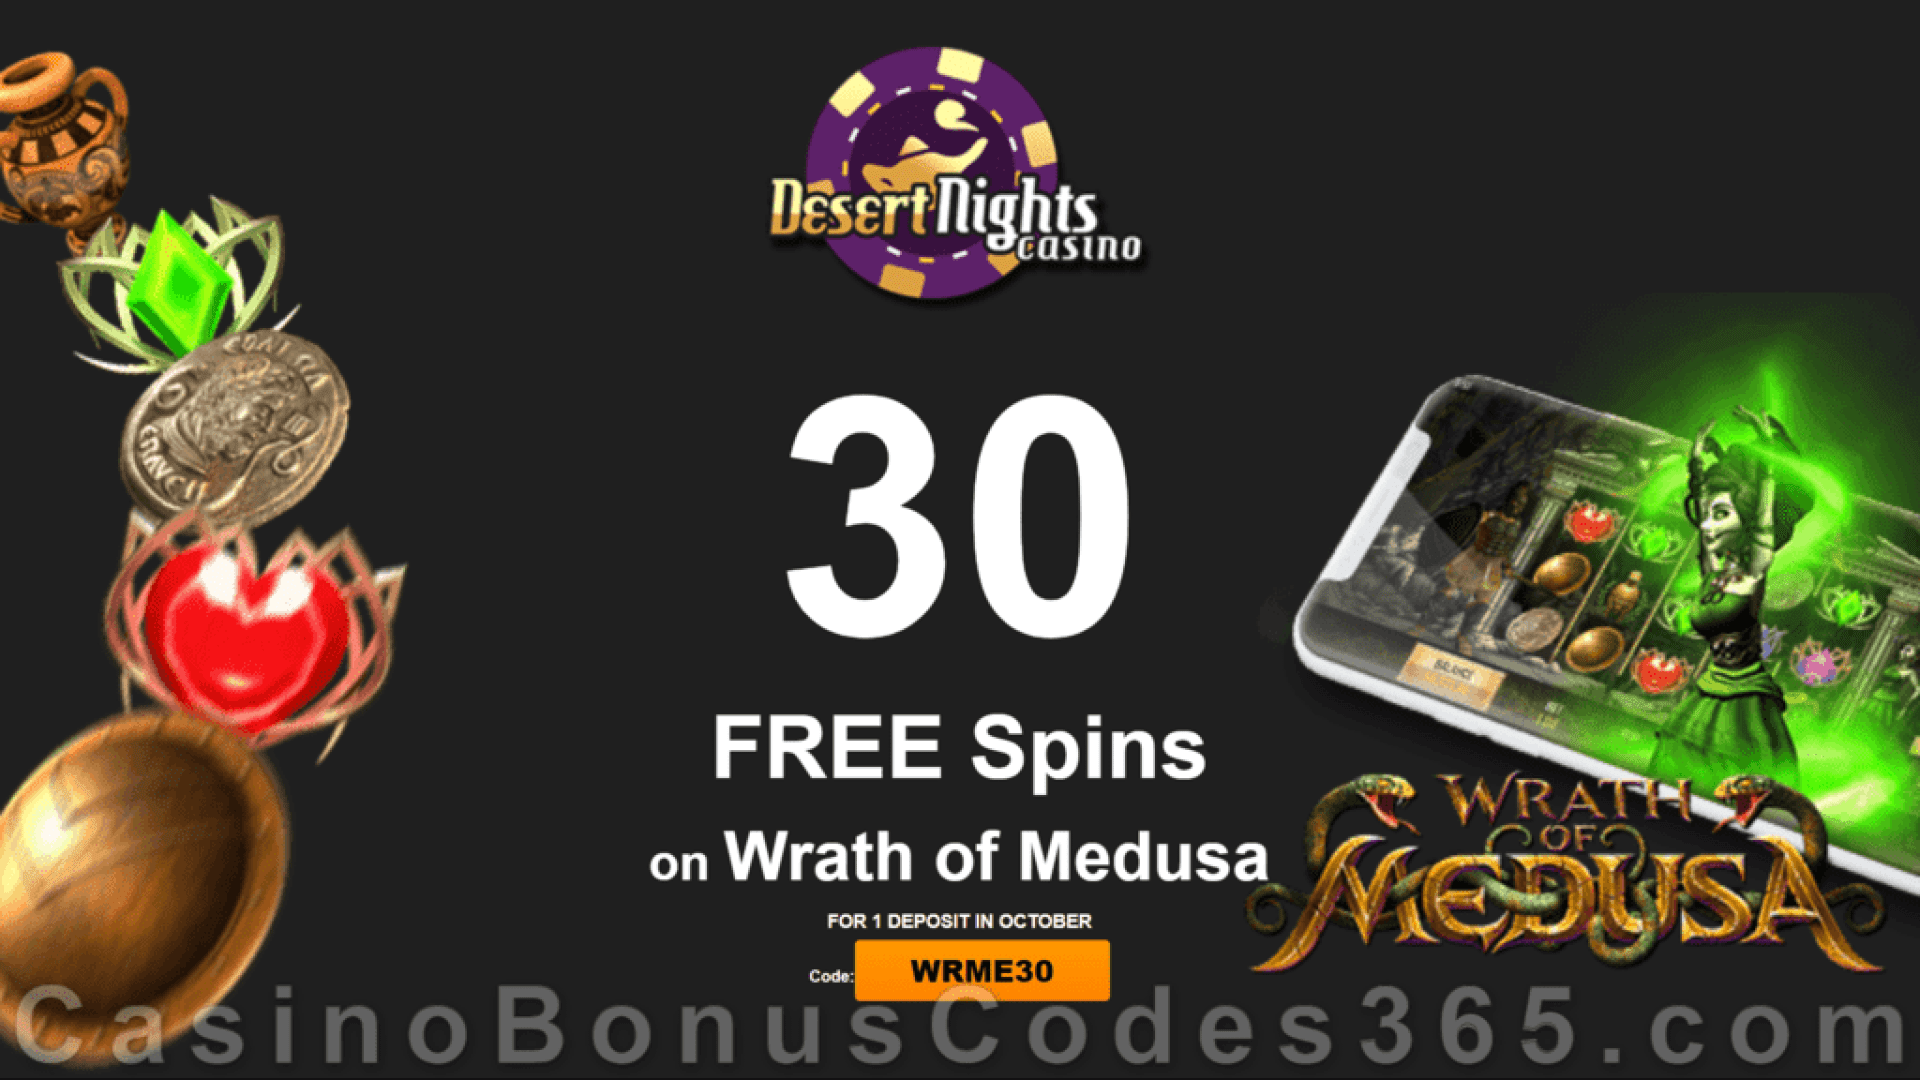 Desert Nights Casino 30 FREE Rival Gaming Wrath of Medusa Spins Special Deposit Offer